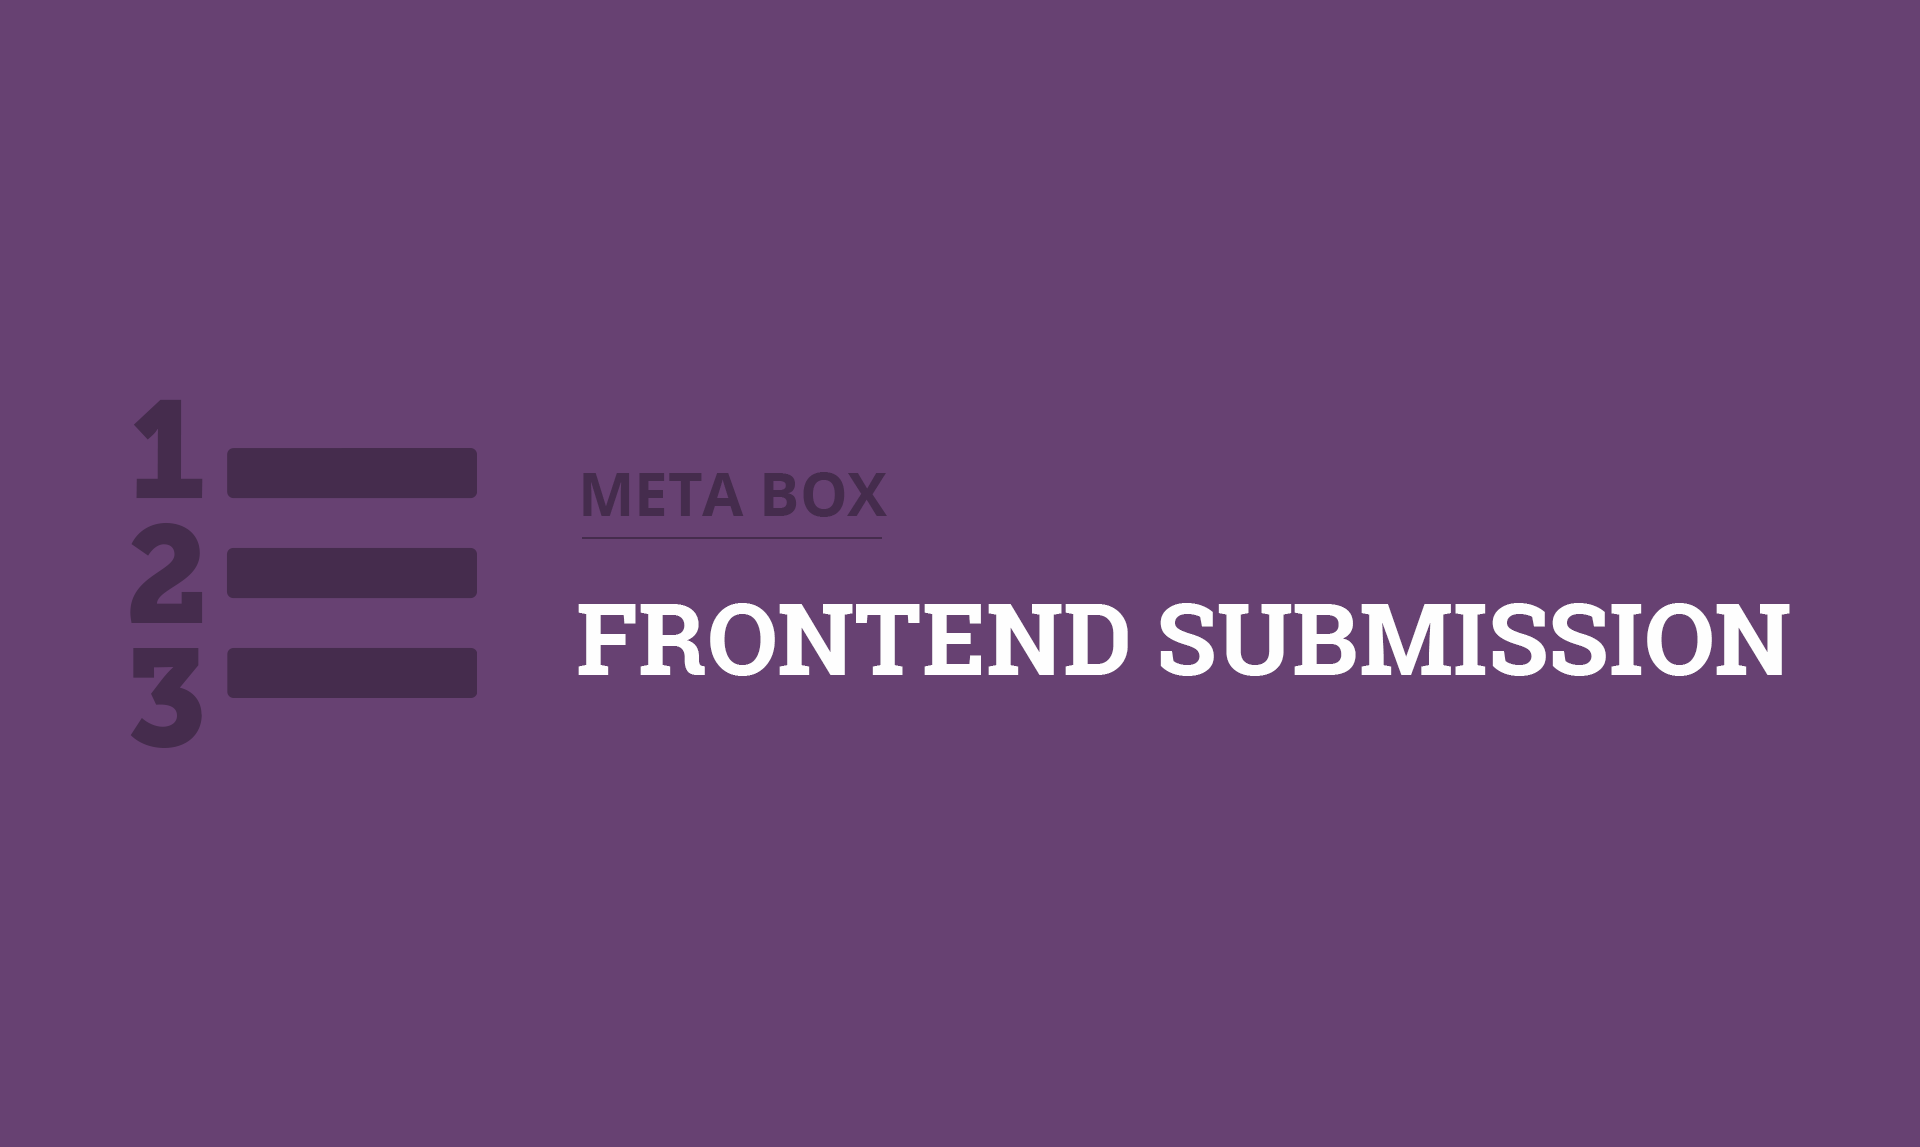 Mb So Mb Frontend Submission